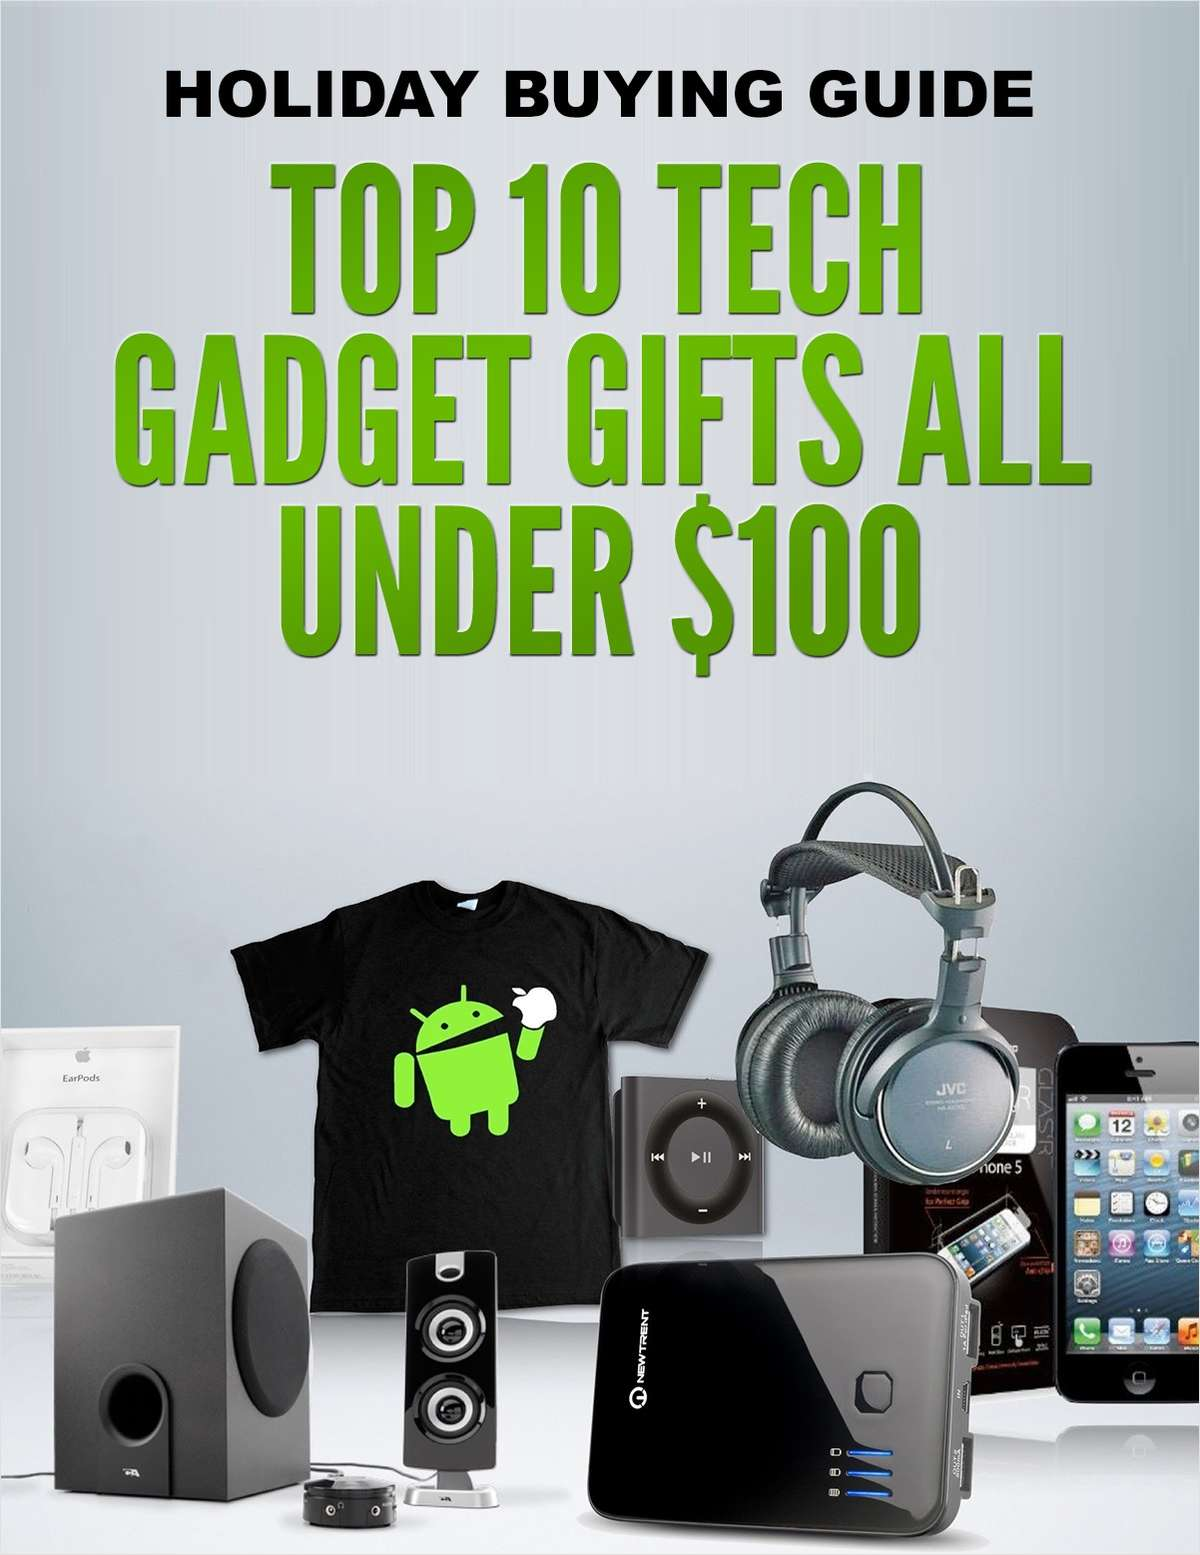 Holiday Buying Guide - Top 10 Tech Gadget Gifts All Under $100